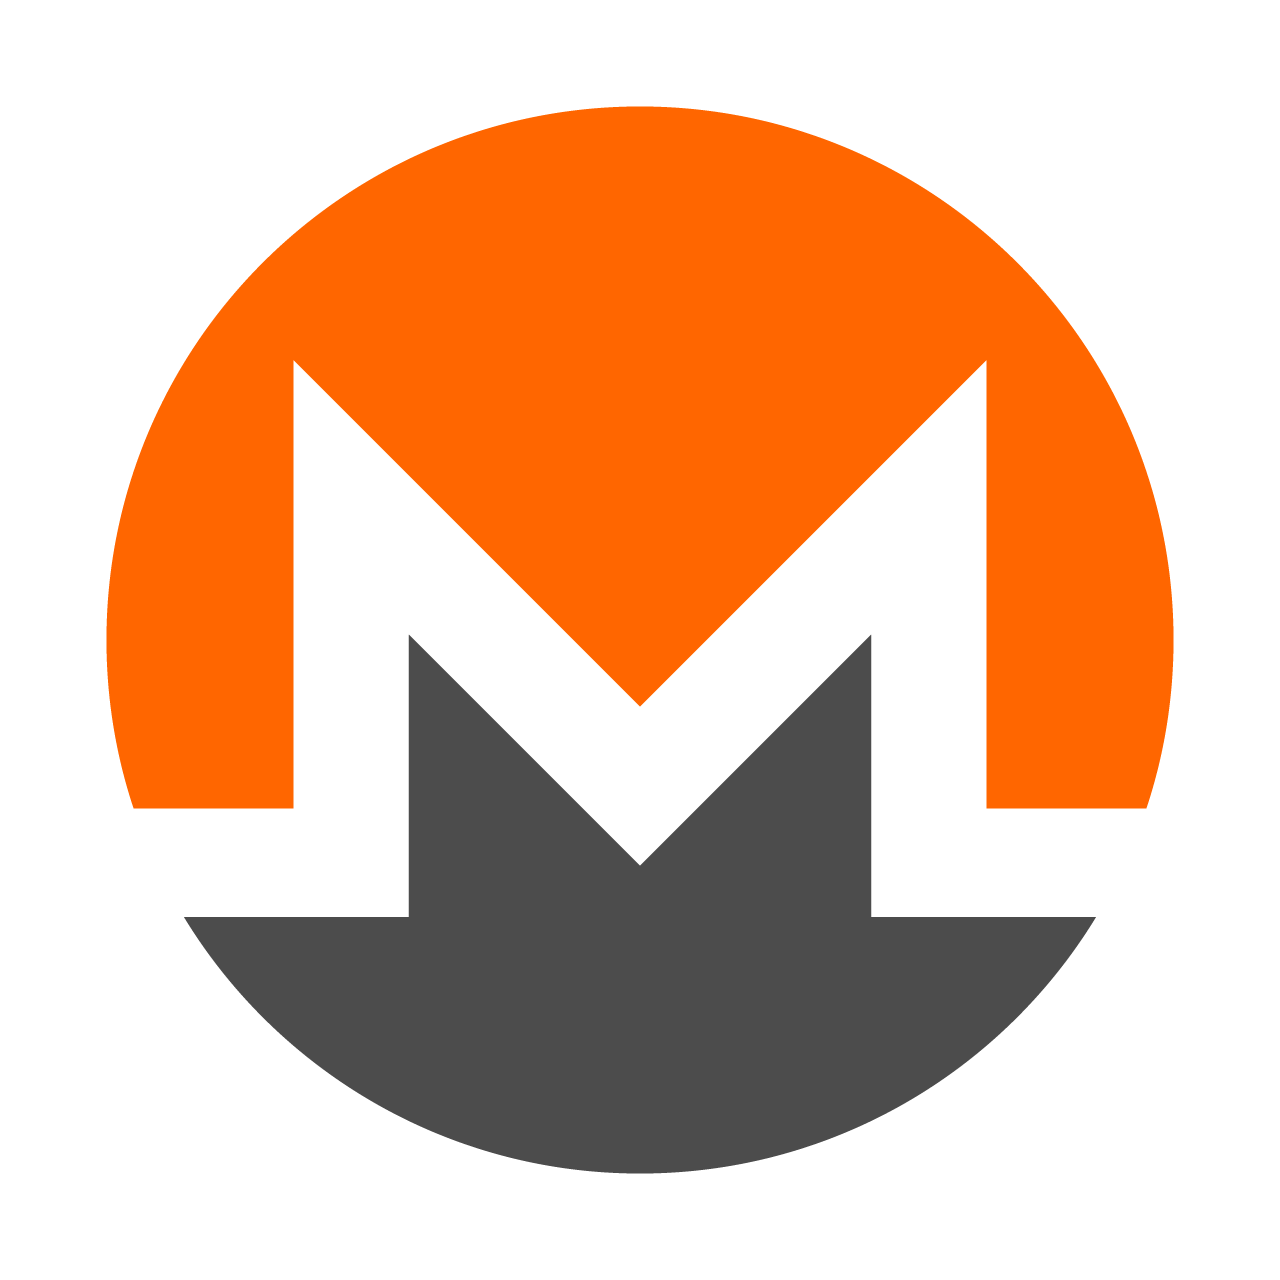 Cryptocurrency Mines T-Shirt Ethereum Logo Monero PNG Image